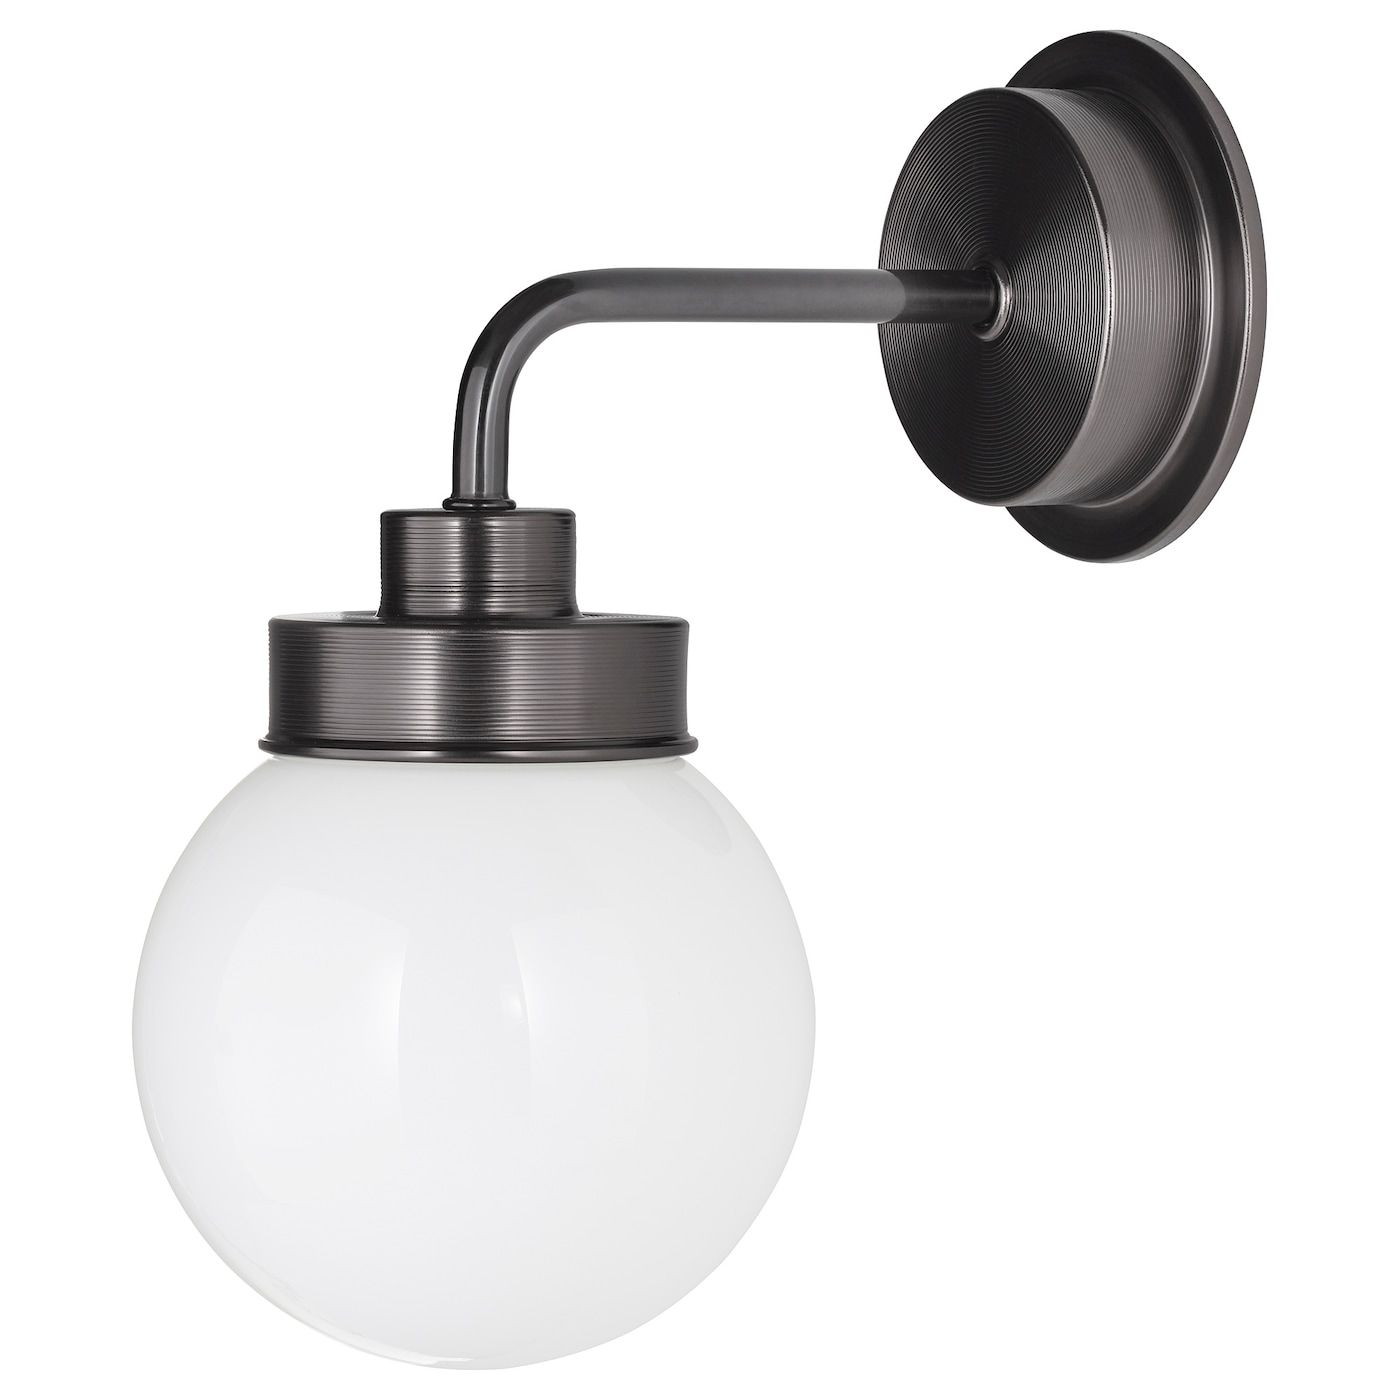 FRIHULT Wall lamp black in 2020 | Black wall lamps, Wall